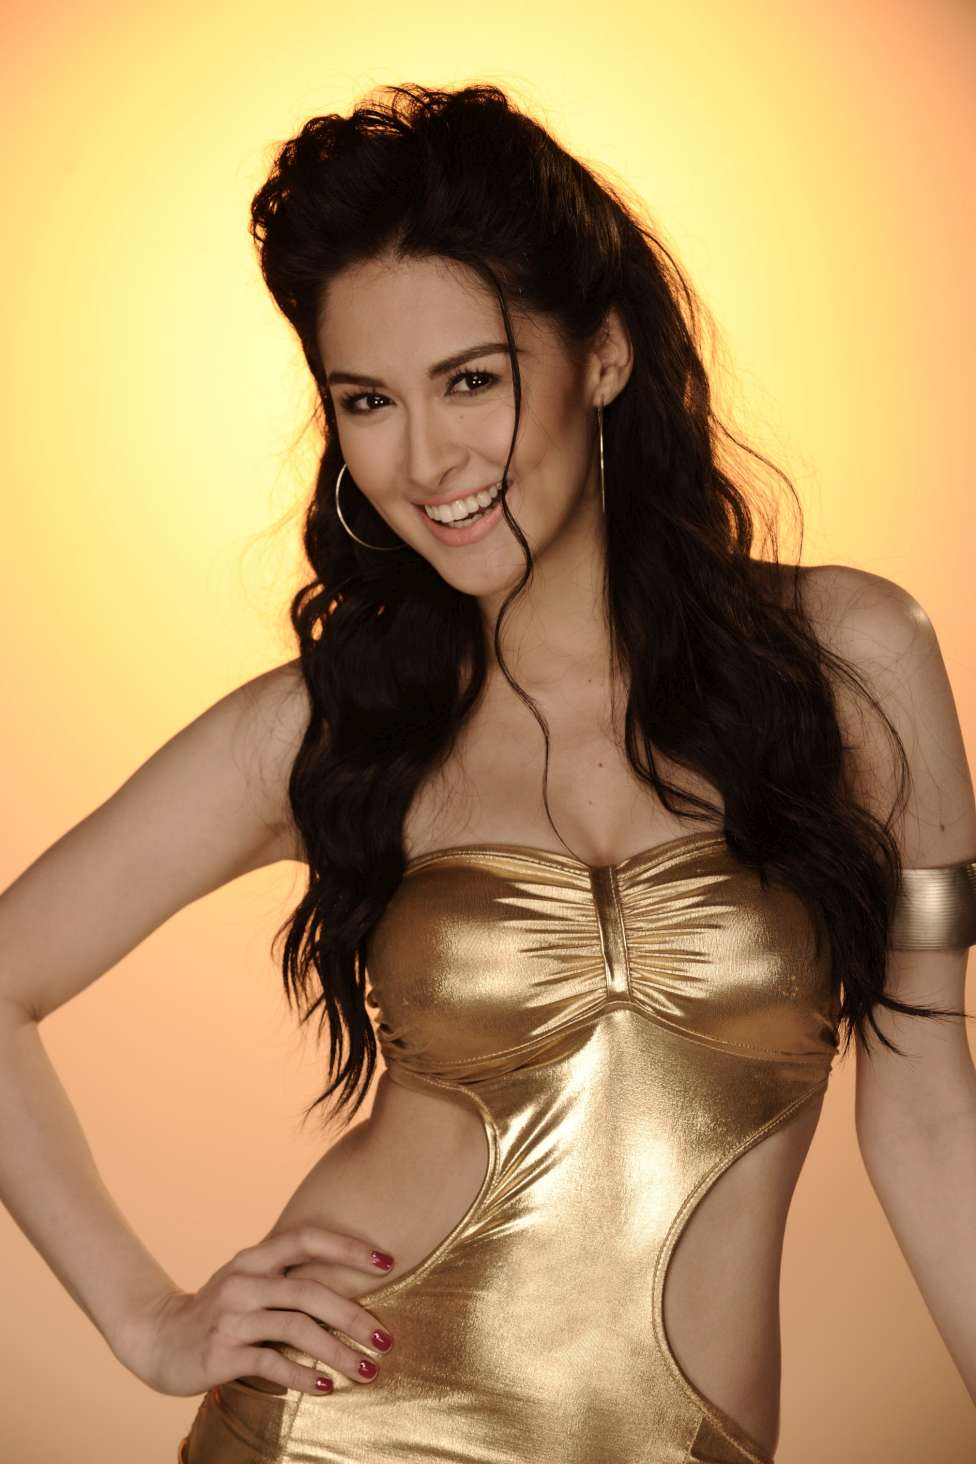 Fucking nude picture of marian rivera family with small